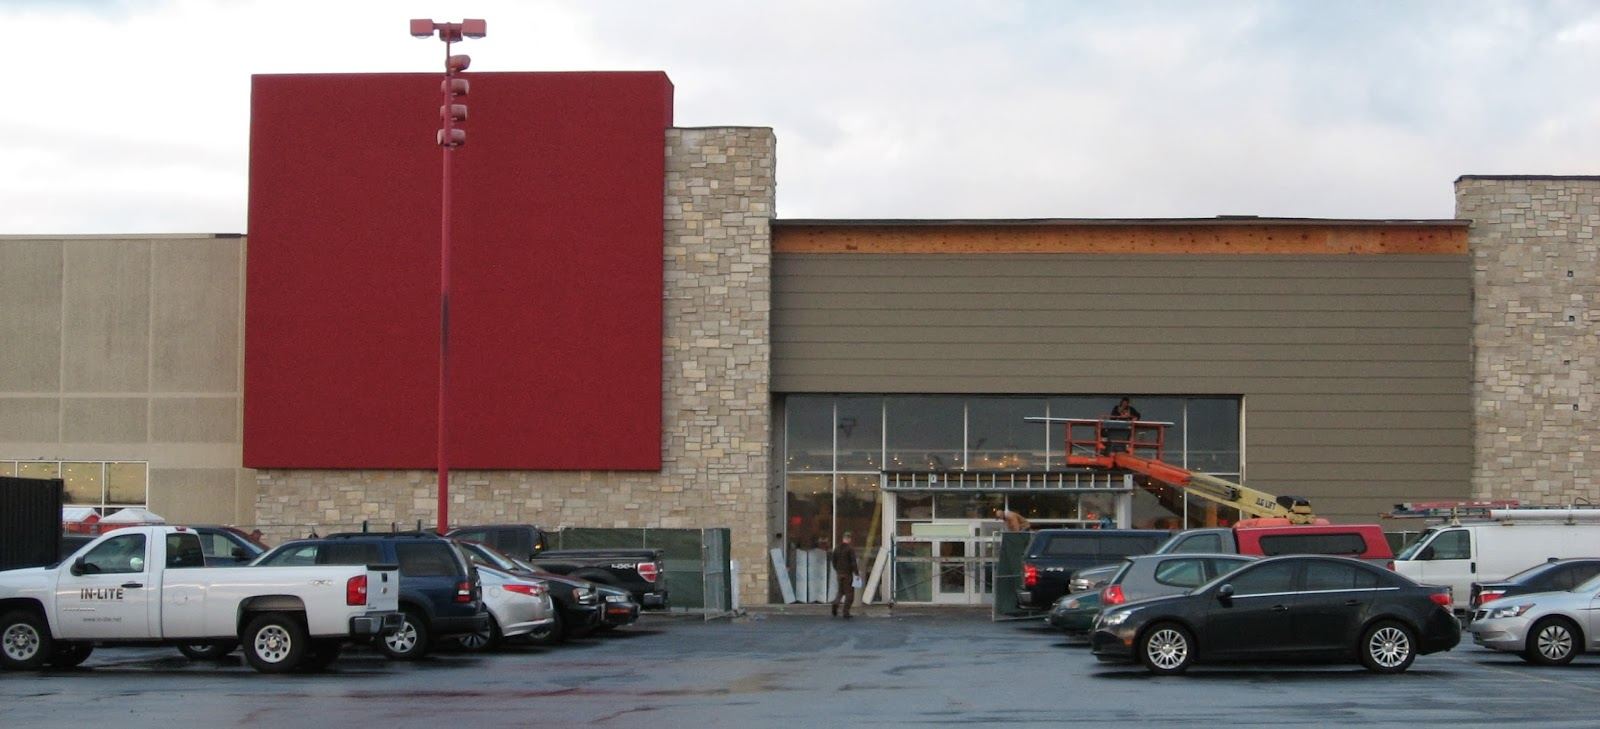 Art Van Furniture Opens Saturday In Bedford Park Shopping Center Southland Savvy